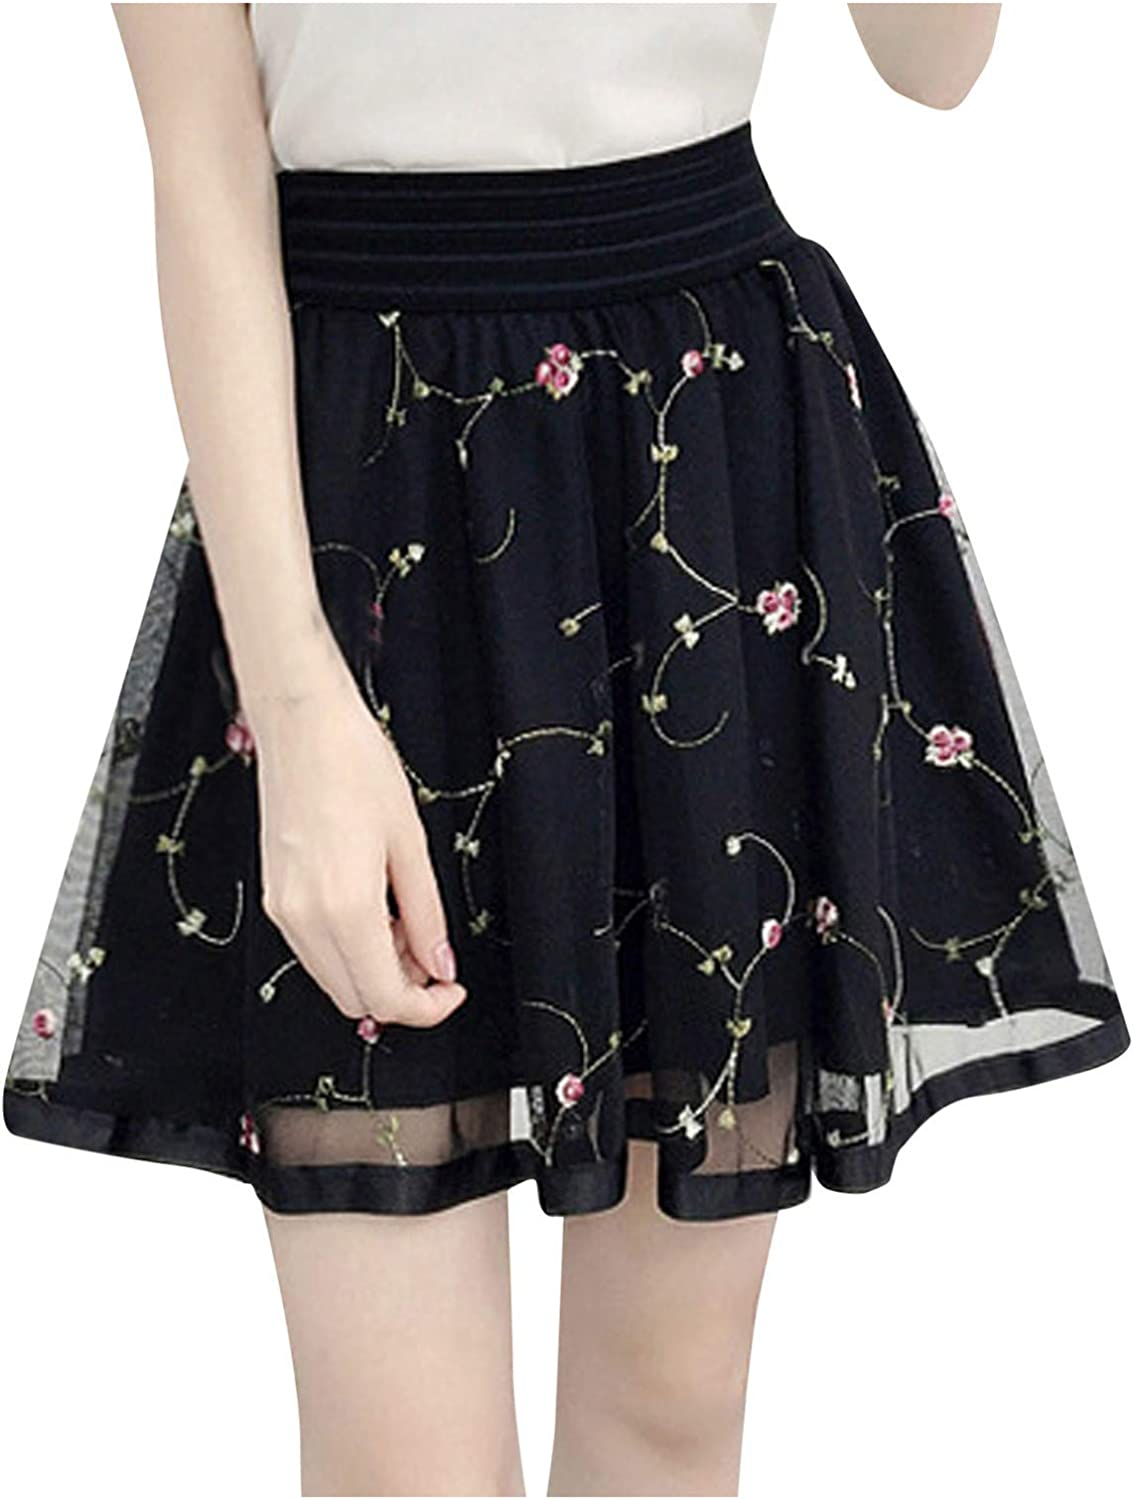 iCODOD Women Lace Floral Print Elastic Waist Short Midi Skirt Pleated Tulle Elegant Night Out Mesh Skirts for Prom Party